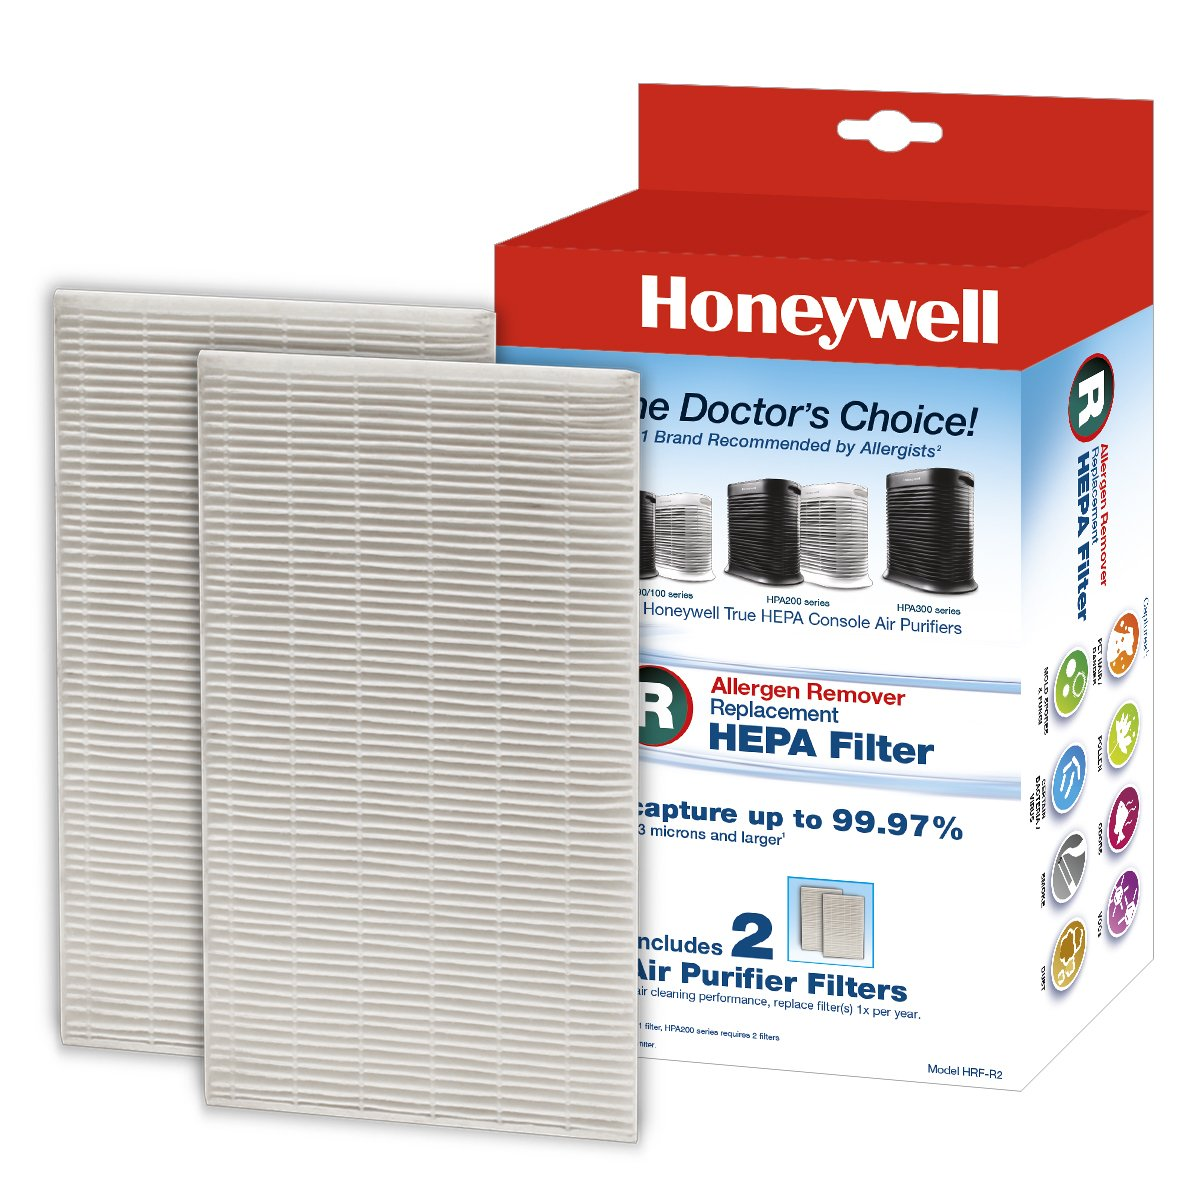 Honeywell True HEPA Replacement Filter HRF-R2 - 2 Pack Helen of Troy